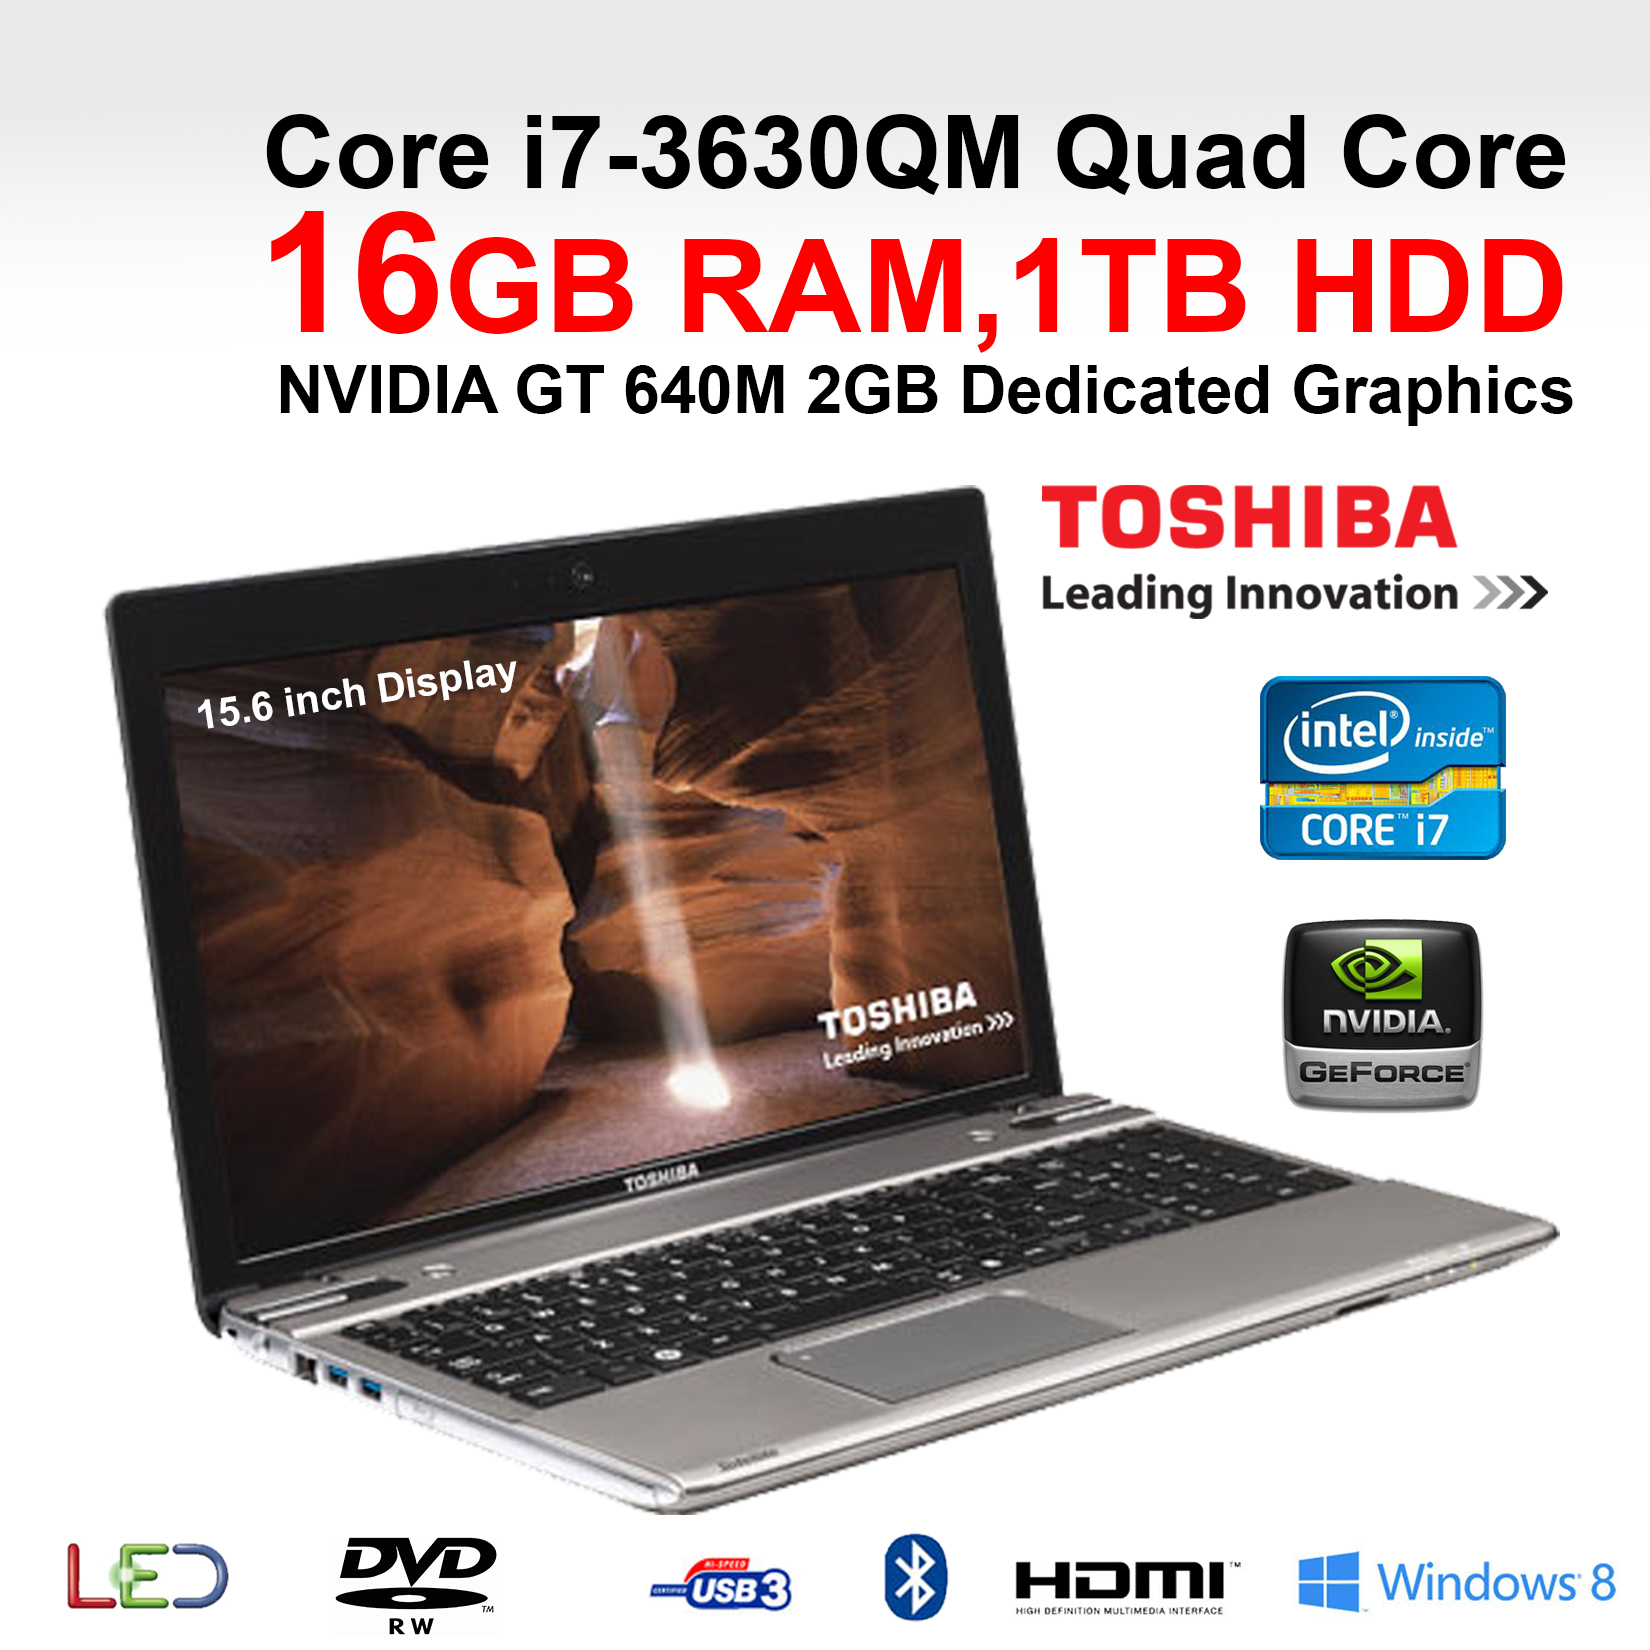 toshiba p855 34p gaming laptop core i7 3630qm quad core 16gb ram 1tb 15 6 win 8 ebay. Black Bedroom Furniture Sets. Home Design Ideas